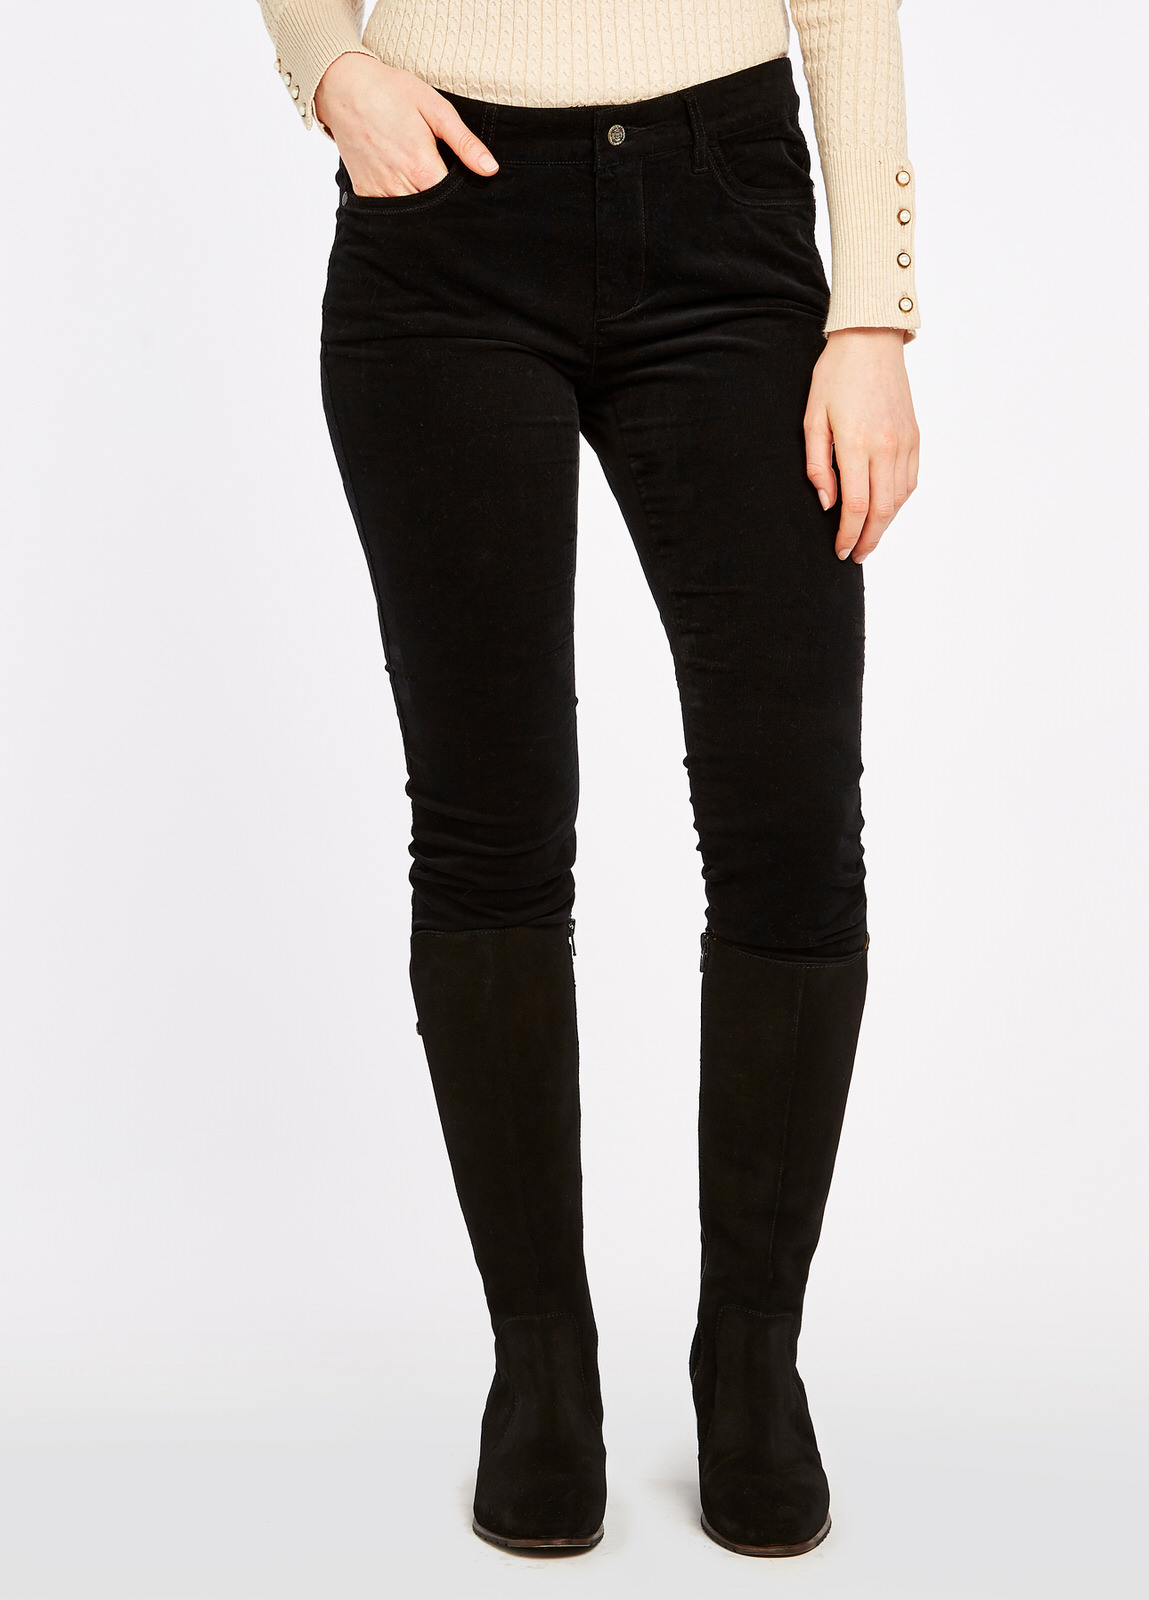 Dubarry_Honeysuckle_Jeans_Black_on_model